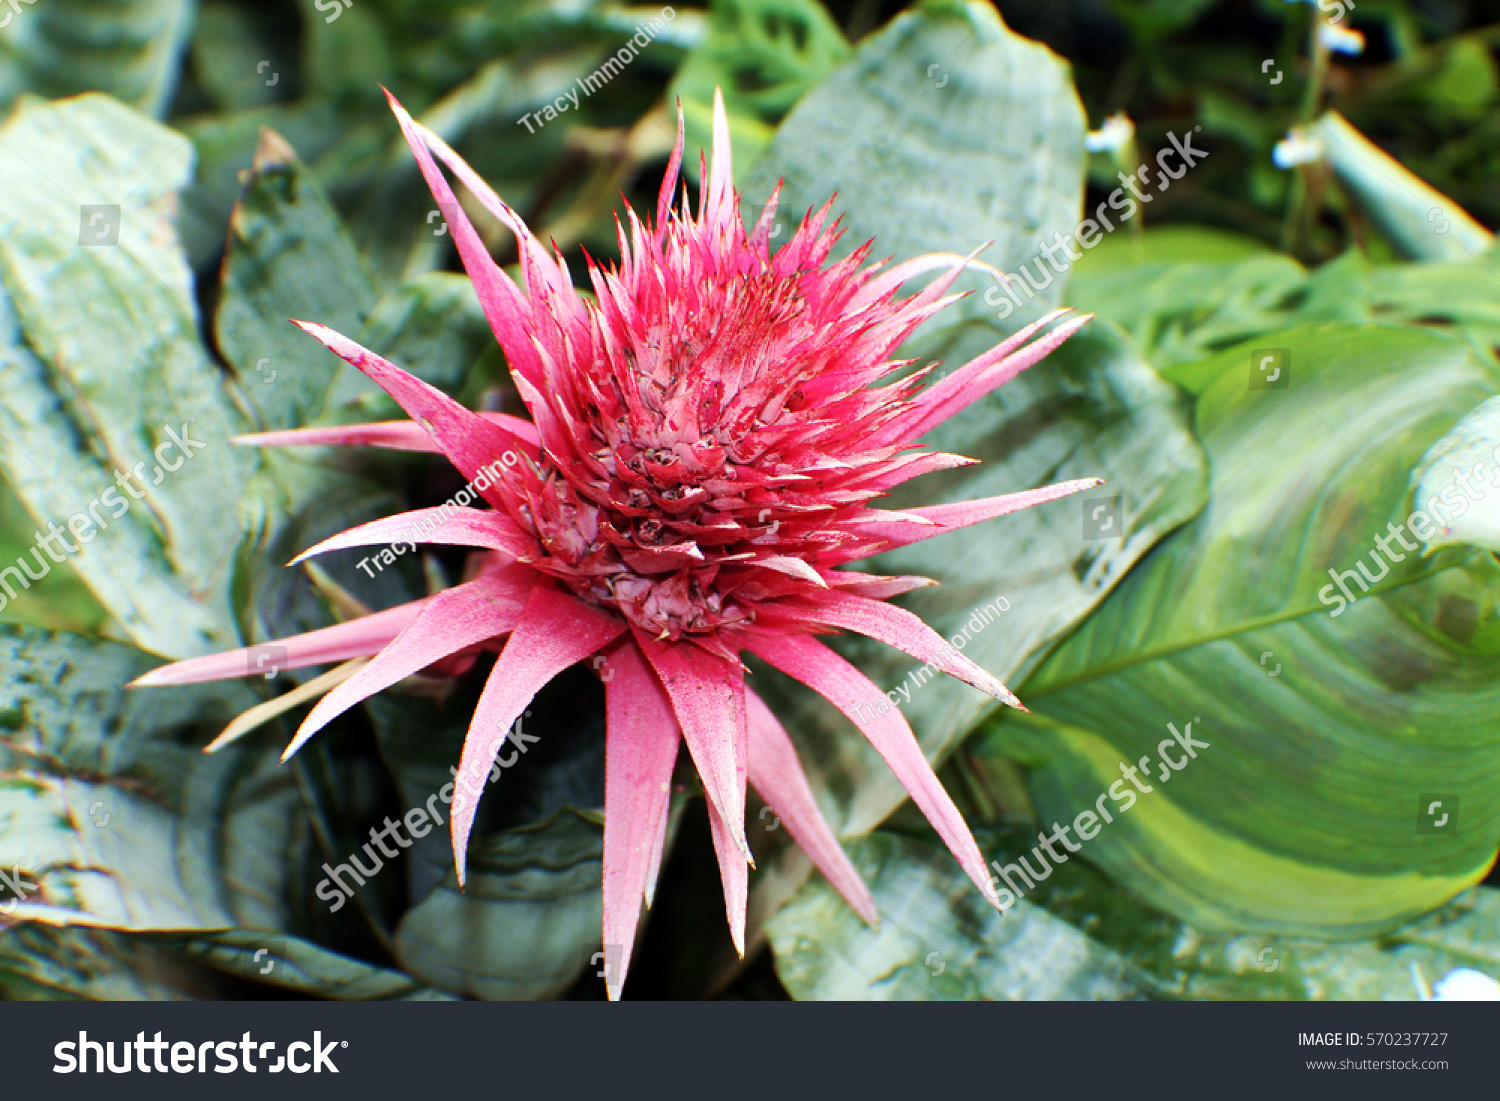 Close large pink flower on aechmea stock photo 100 legal close up of a large pink flower on an aechmea bromeliad plant mightylinksfo